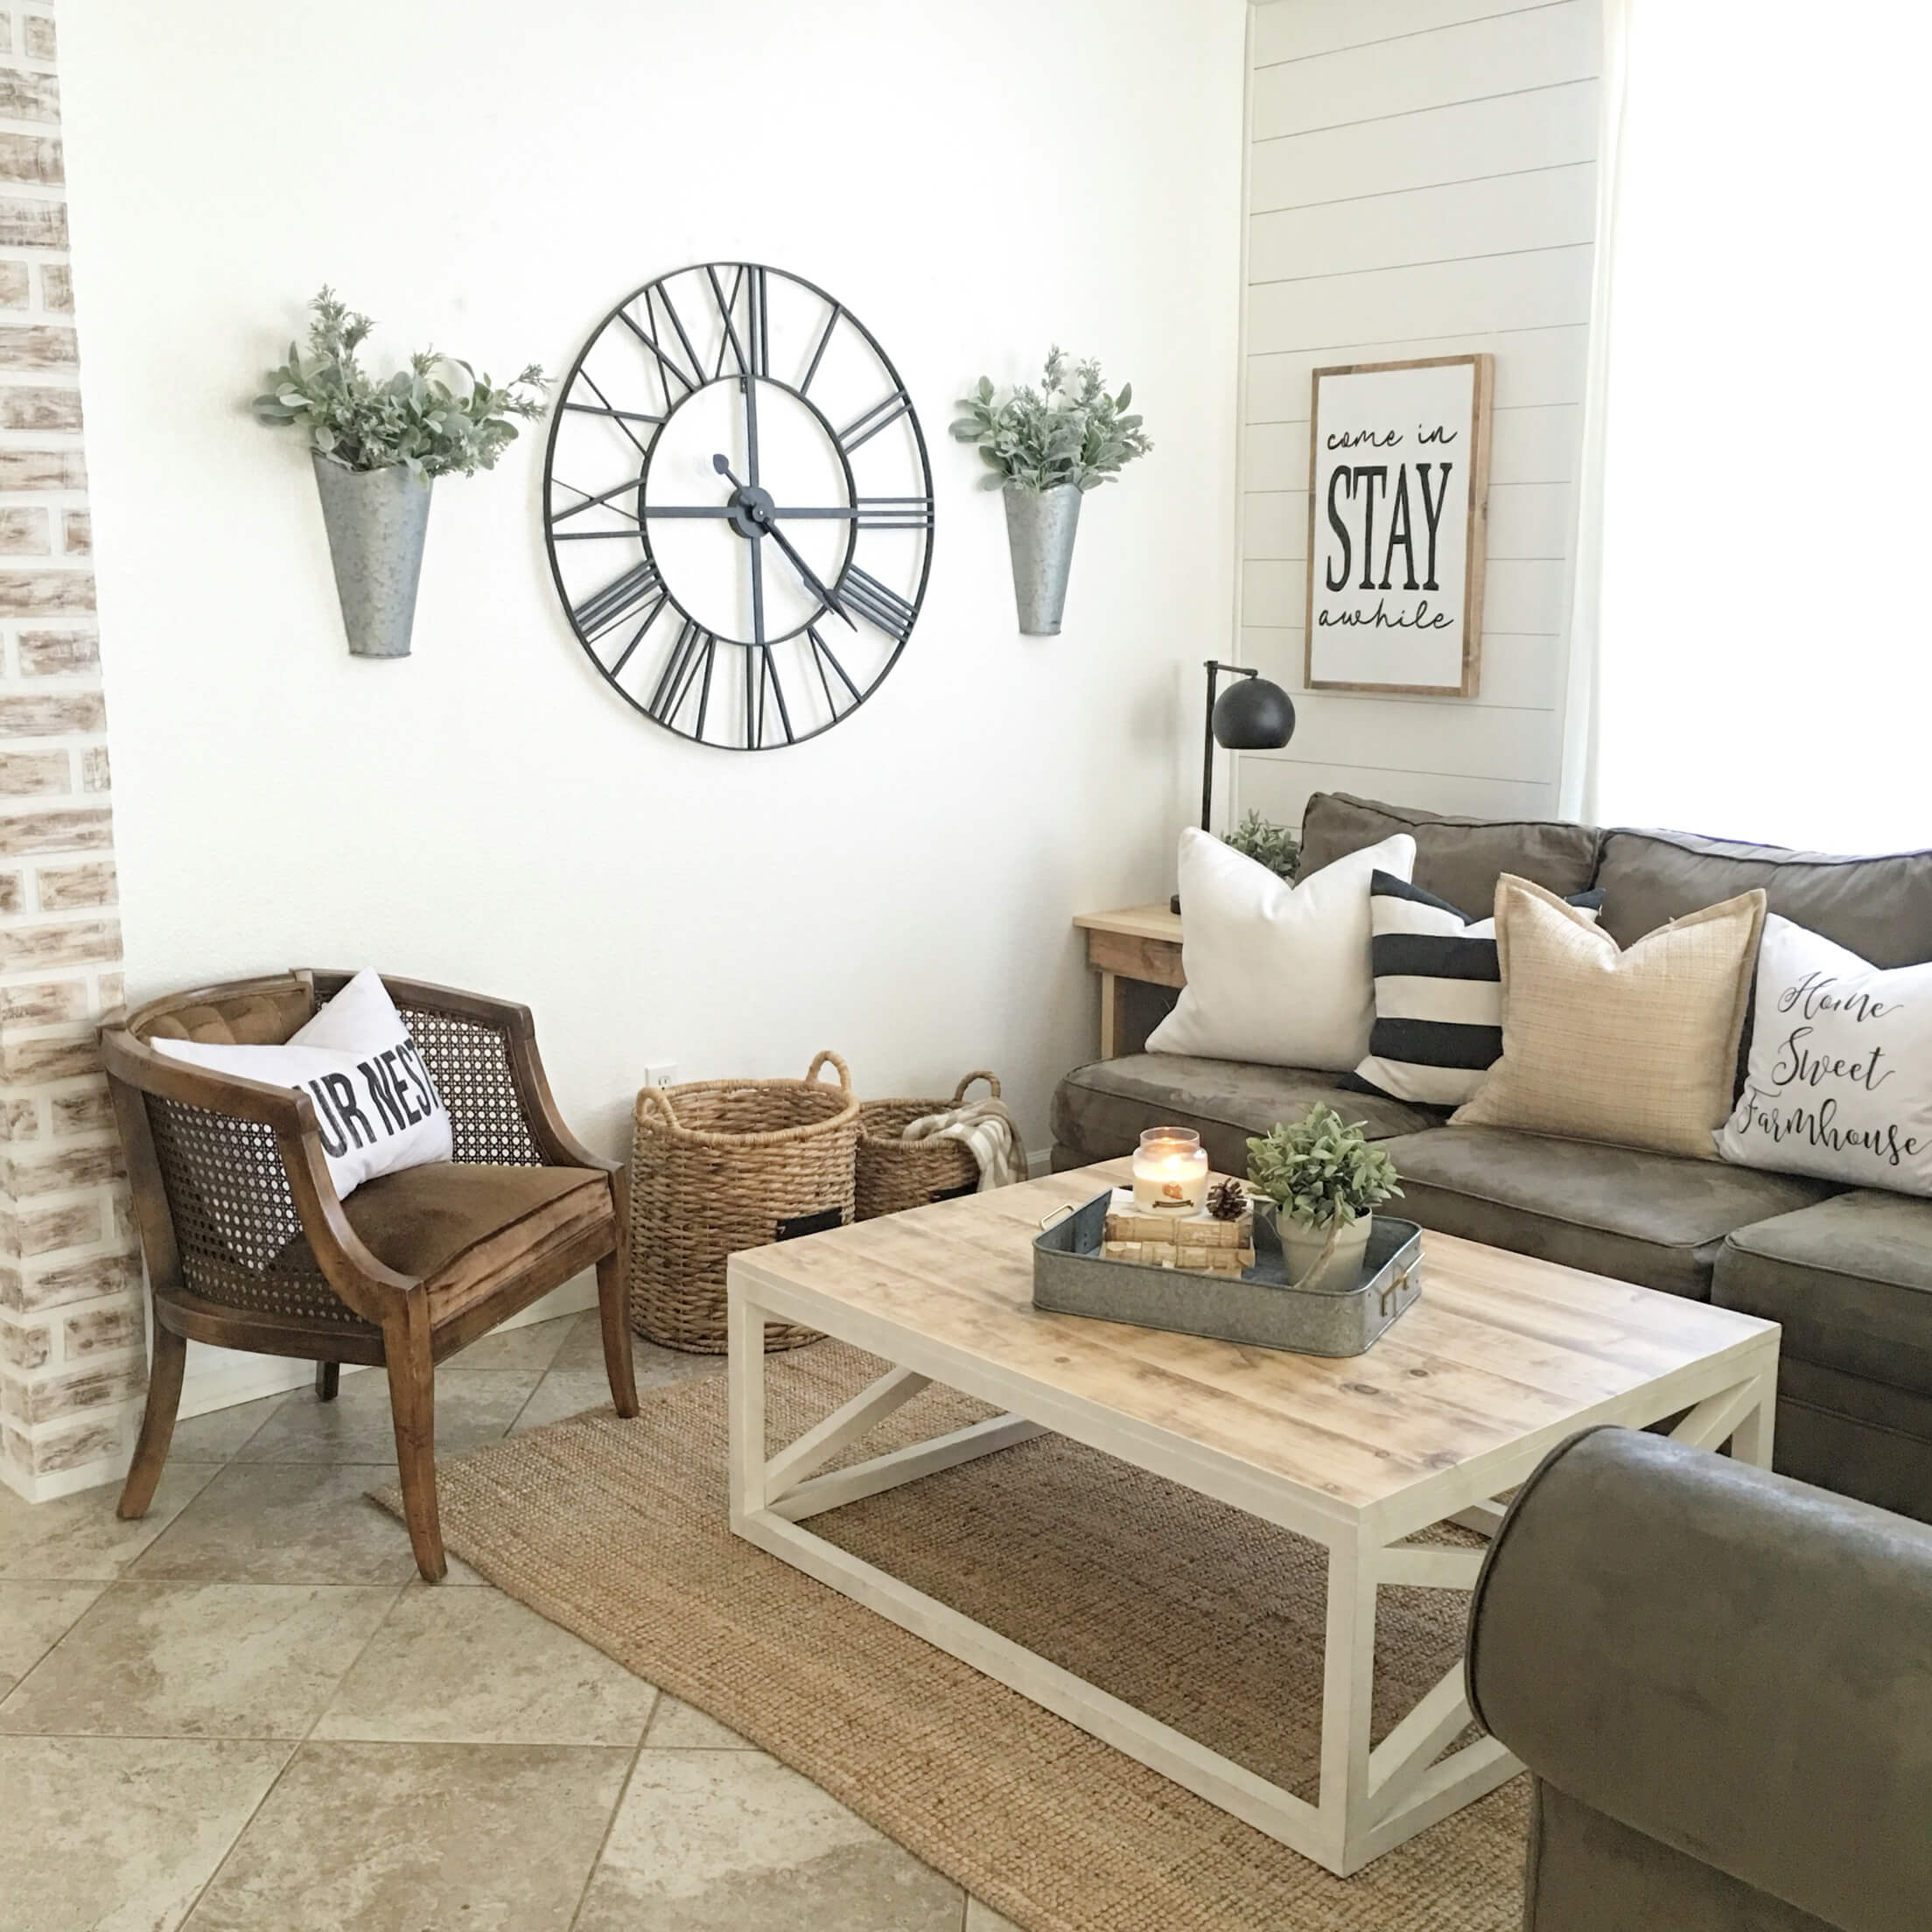 Farmhouse Style Small Living Room Decor Idea